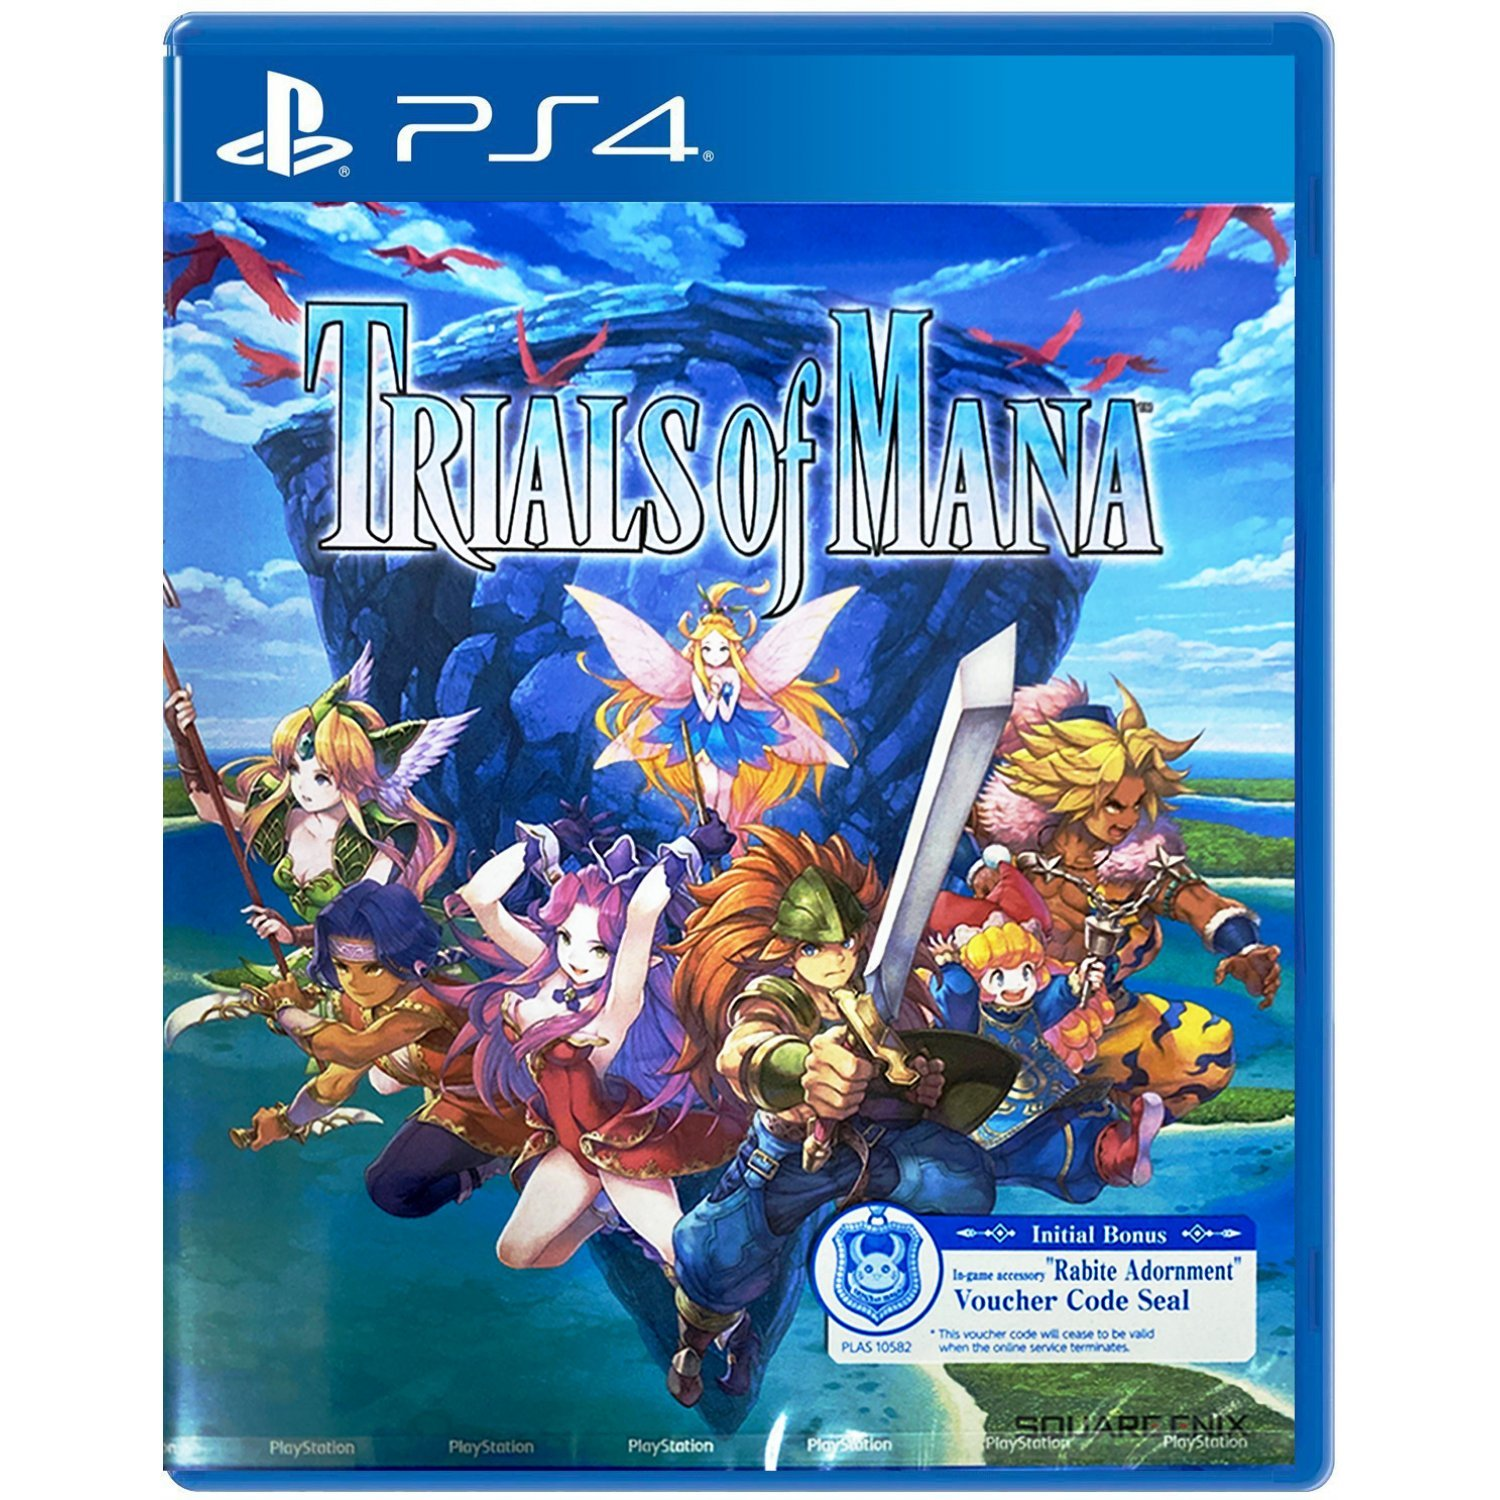 trials-of-mana-english-subs-622011.7.jpg